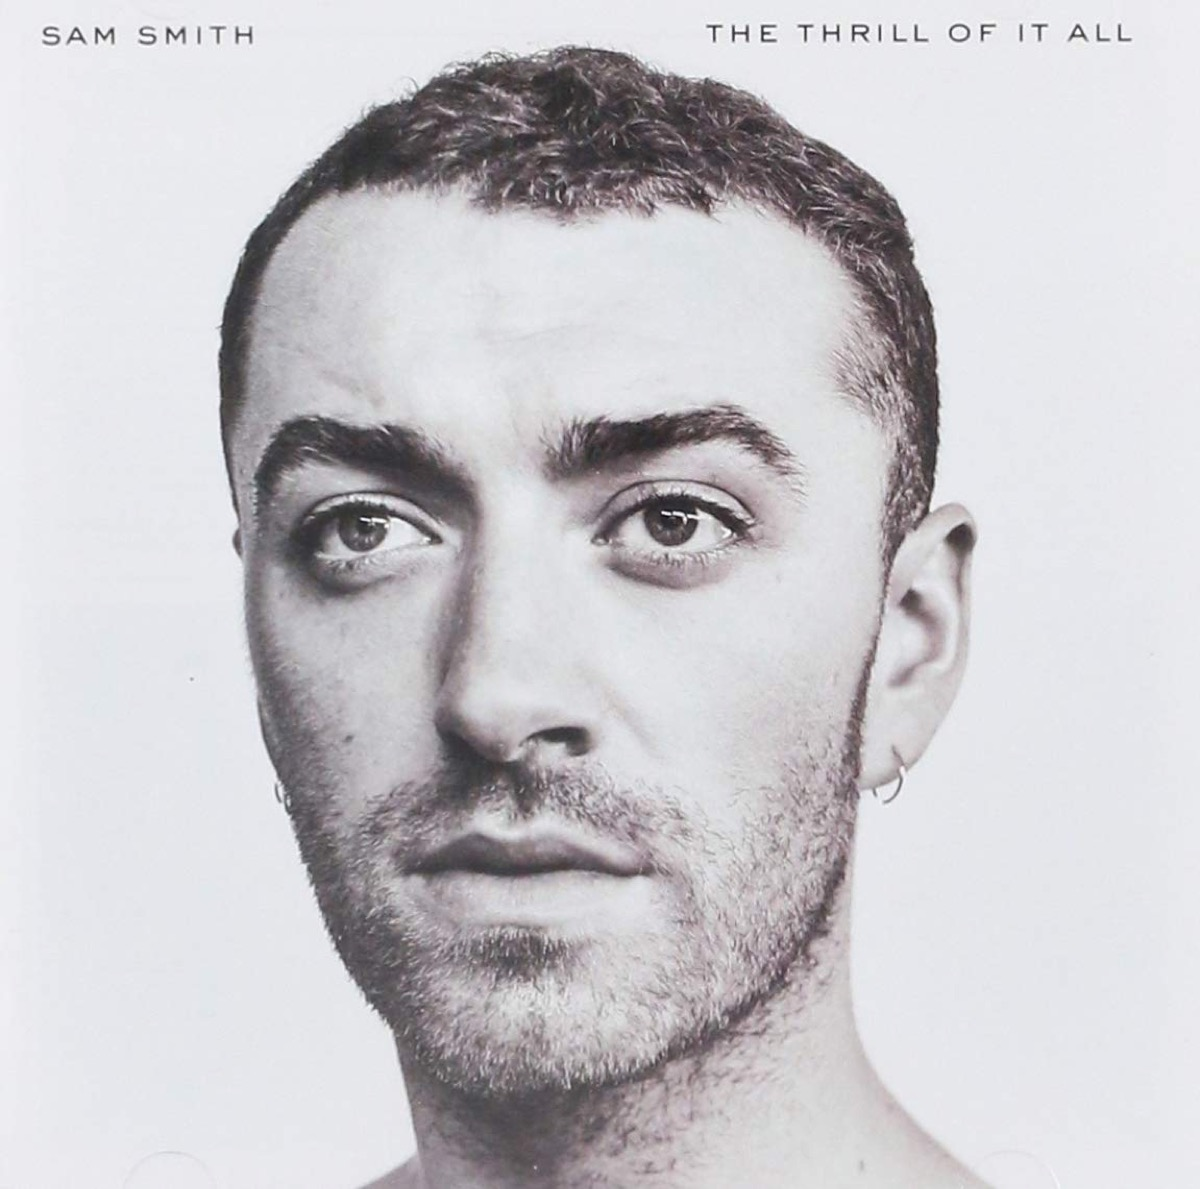 sam smith the thrill of it all album cover